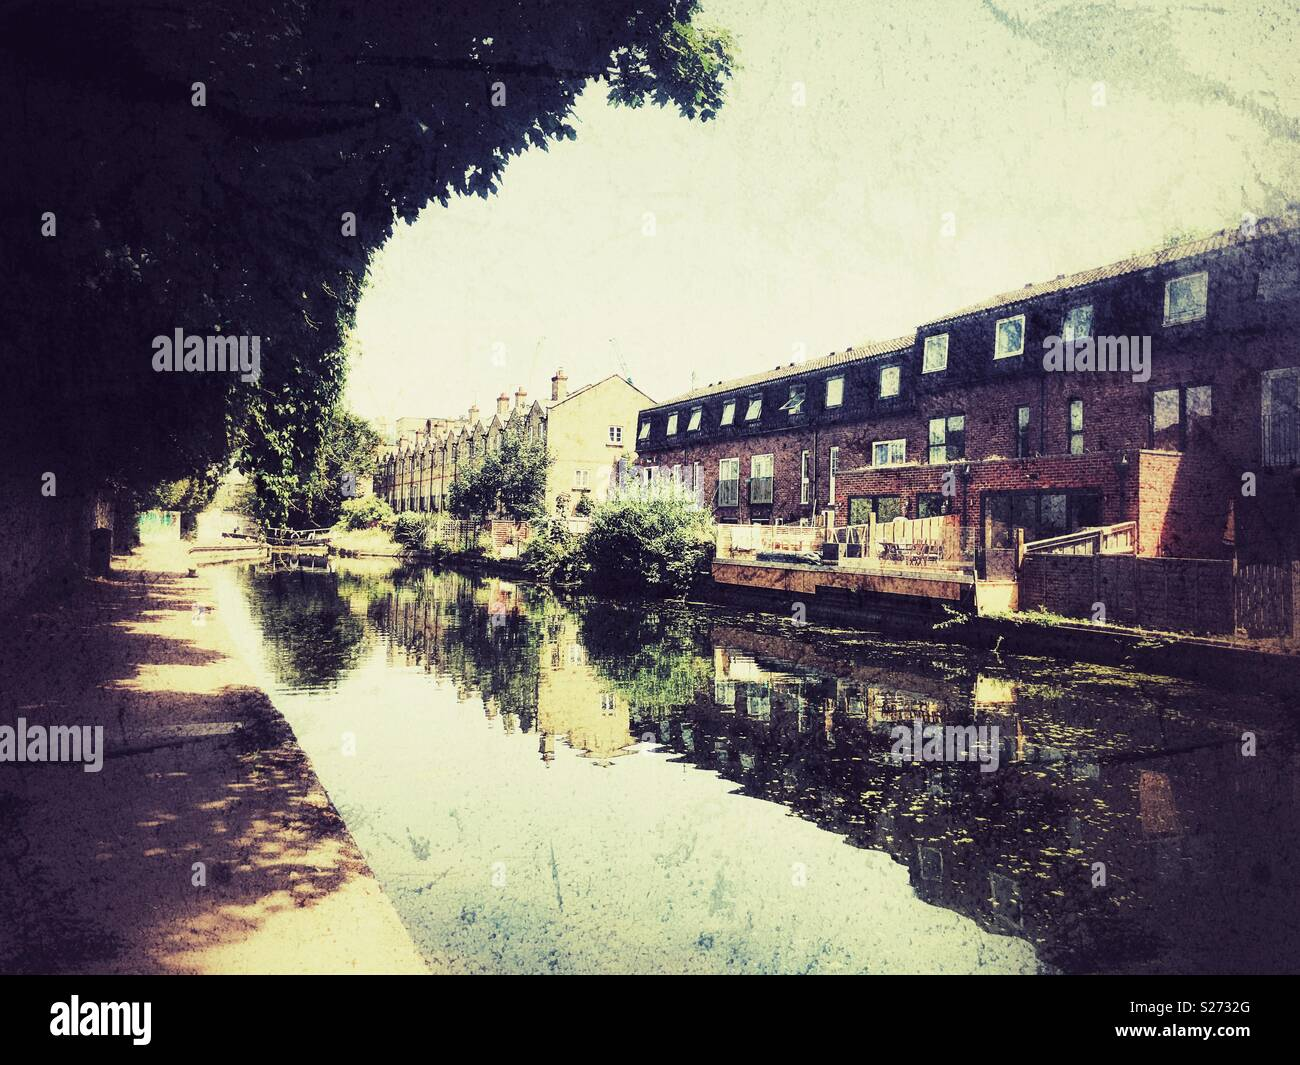 Grainy photo of Hertford union canal in Bow, East London - Stock Image